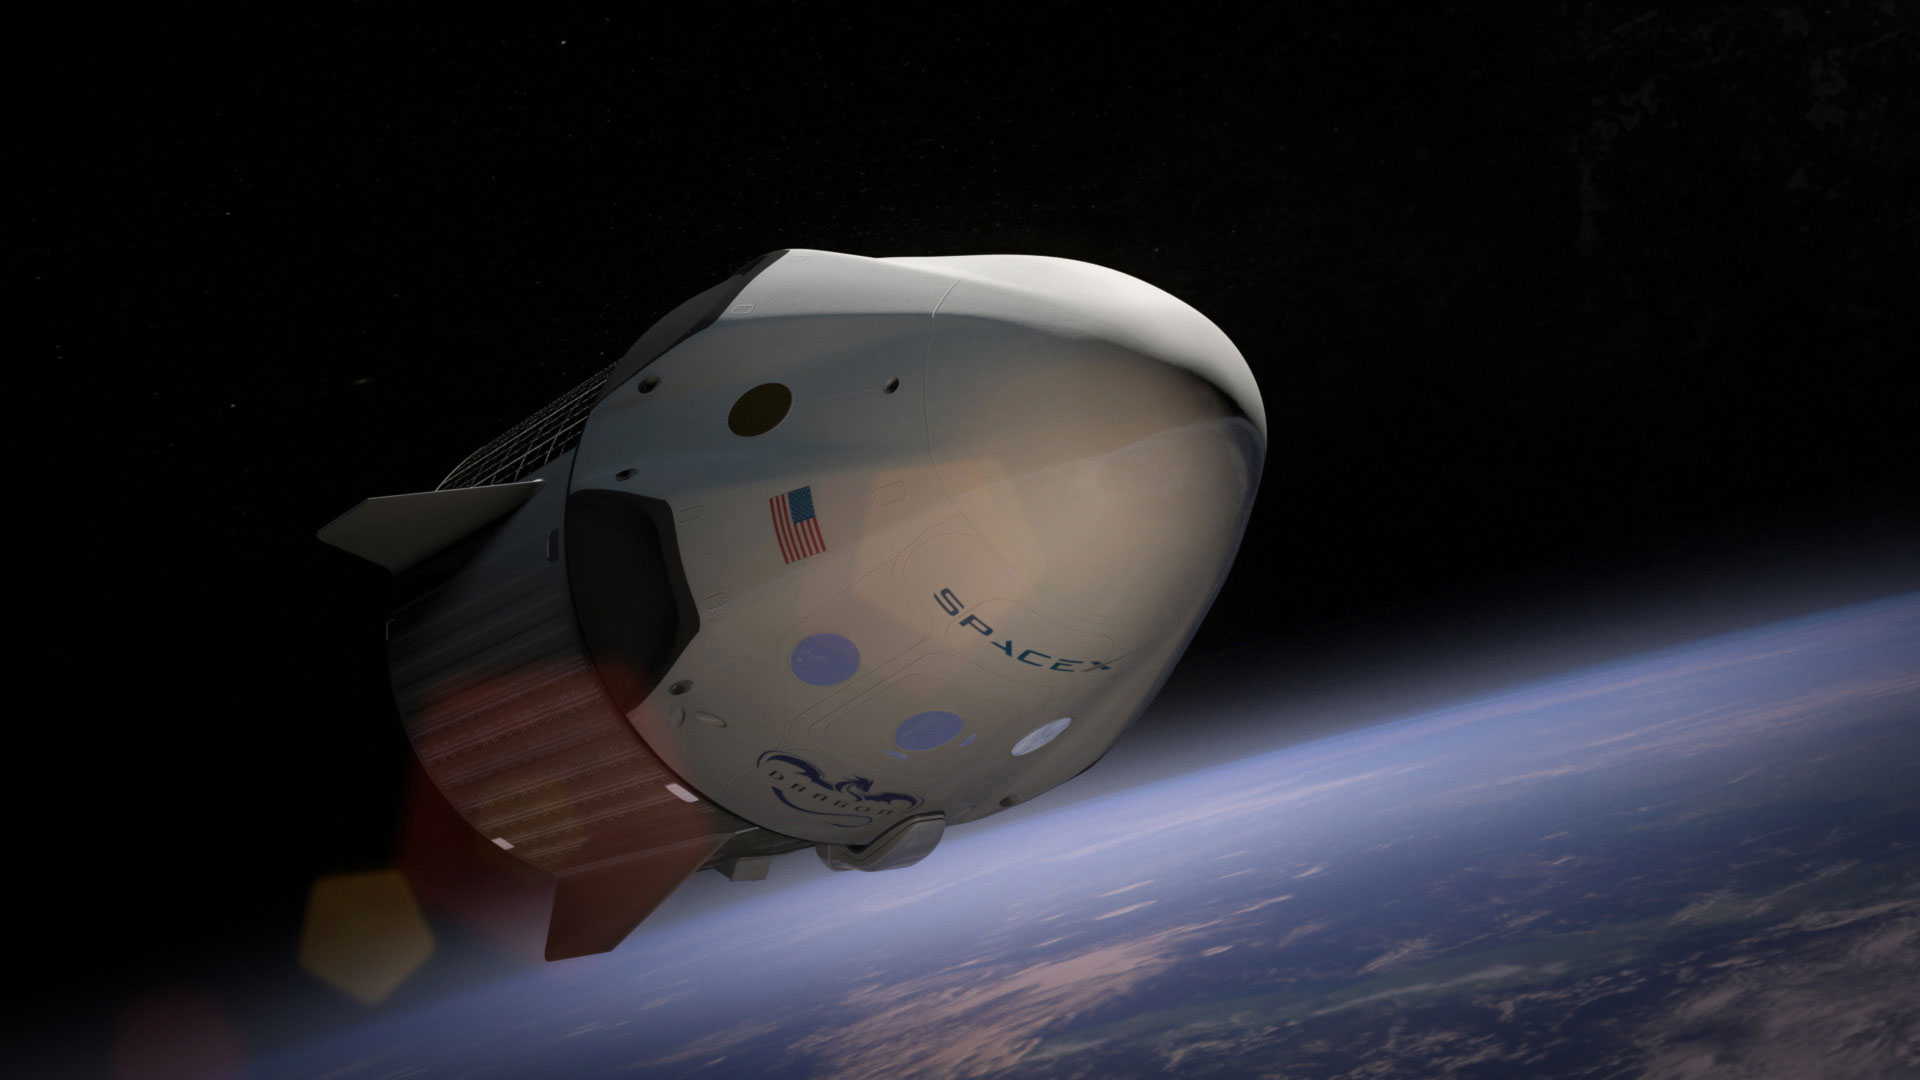 An artist's rendering of the SpaceX Dragon V2 capsule and service module in orbit and heading to the International Space Station. Credit: SpaceX